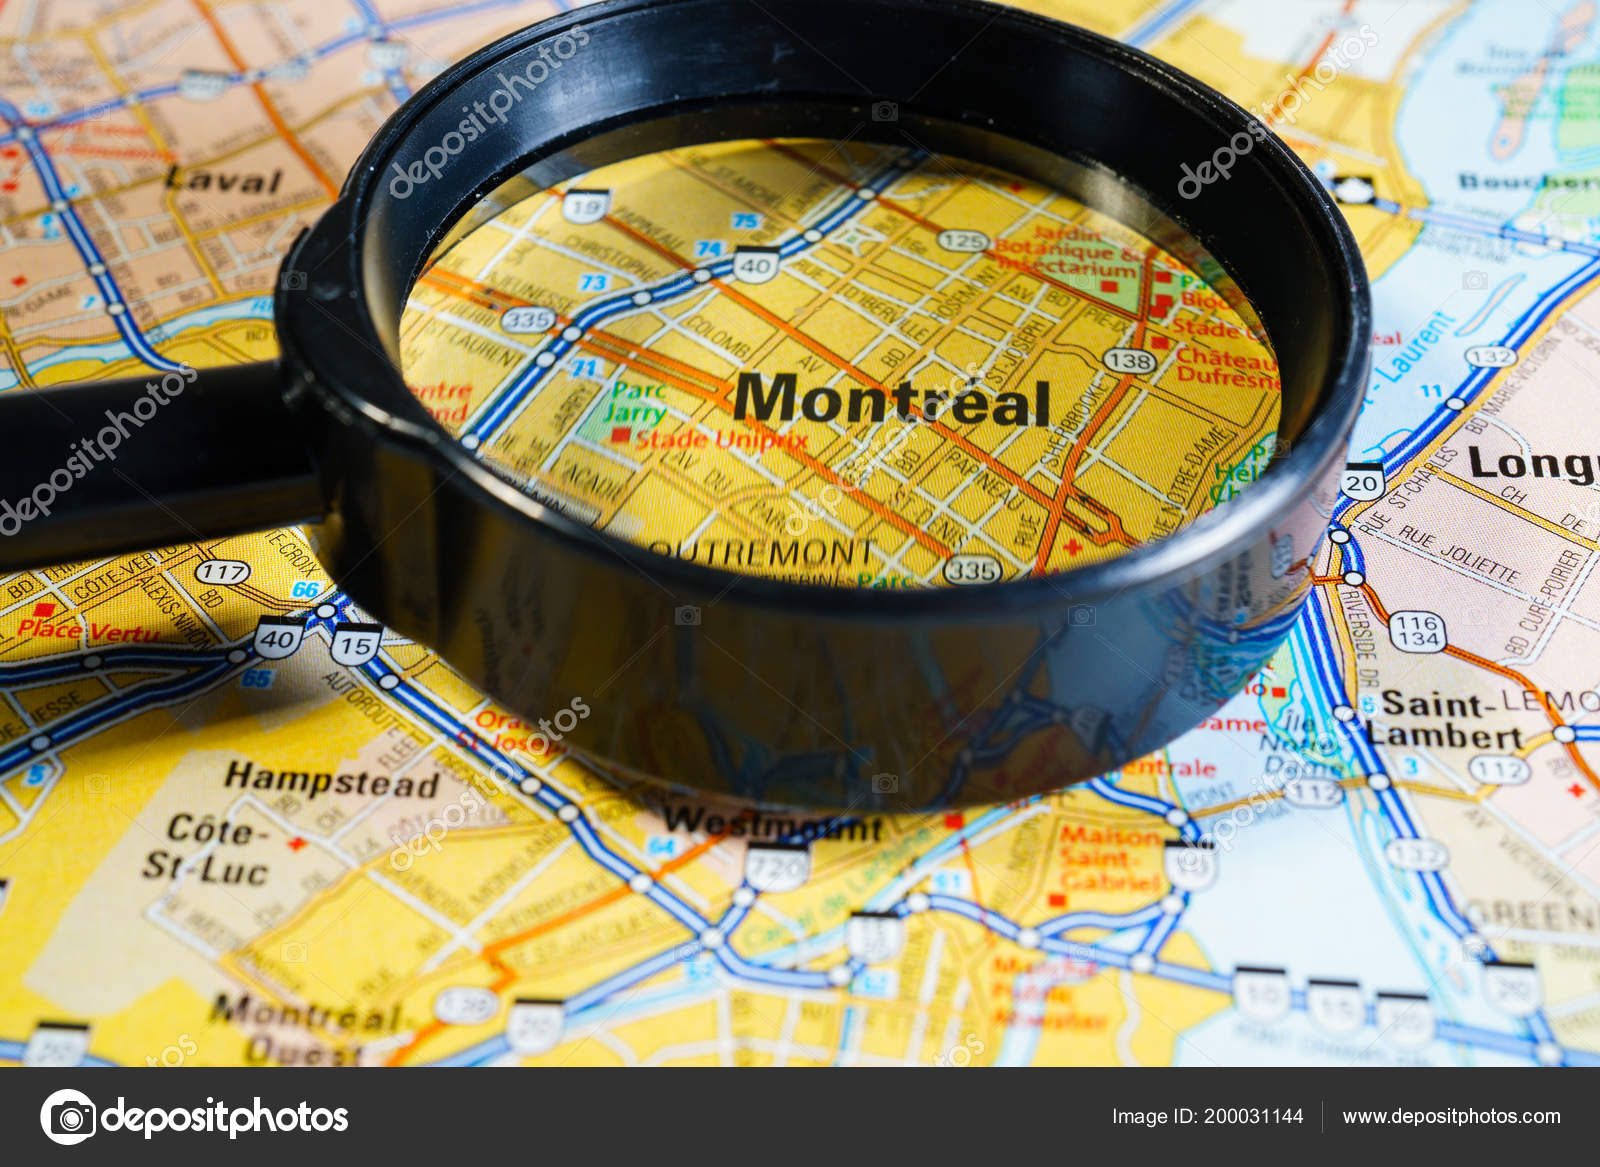 Canada Map Montreal.Montreal Canada Map Stock Photo C Aallm 200031144